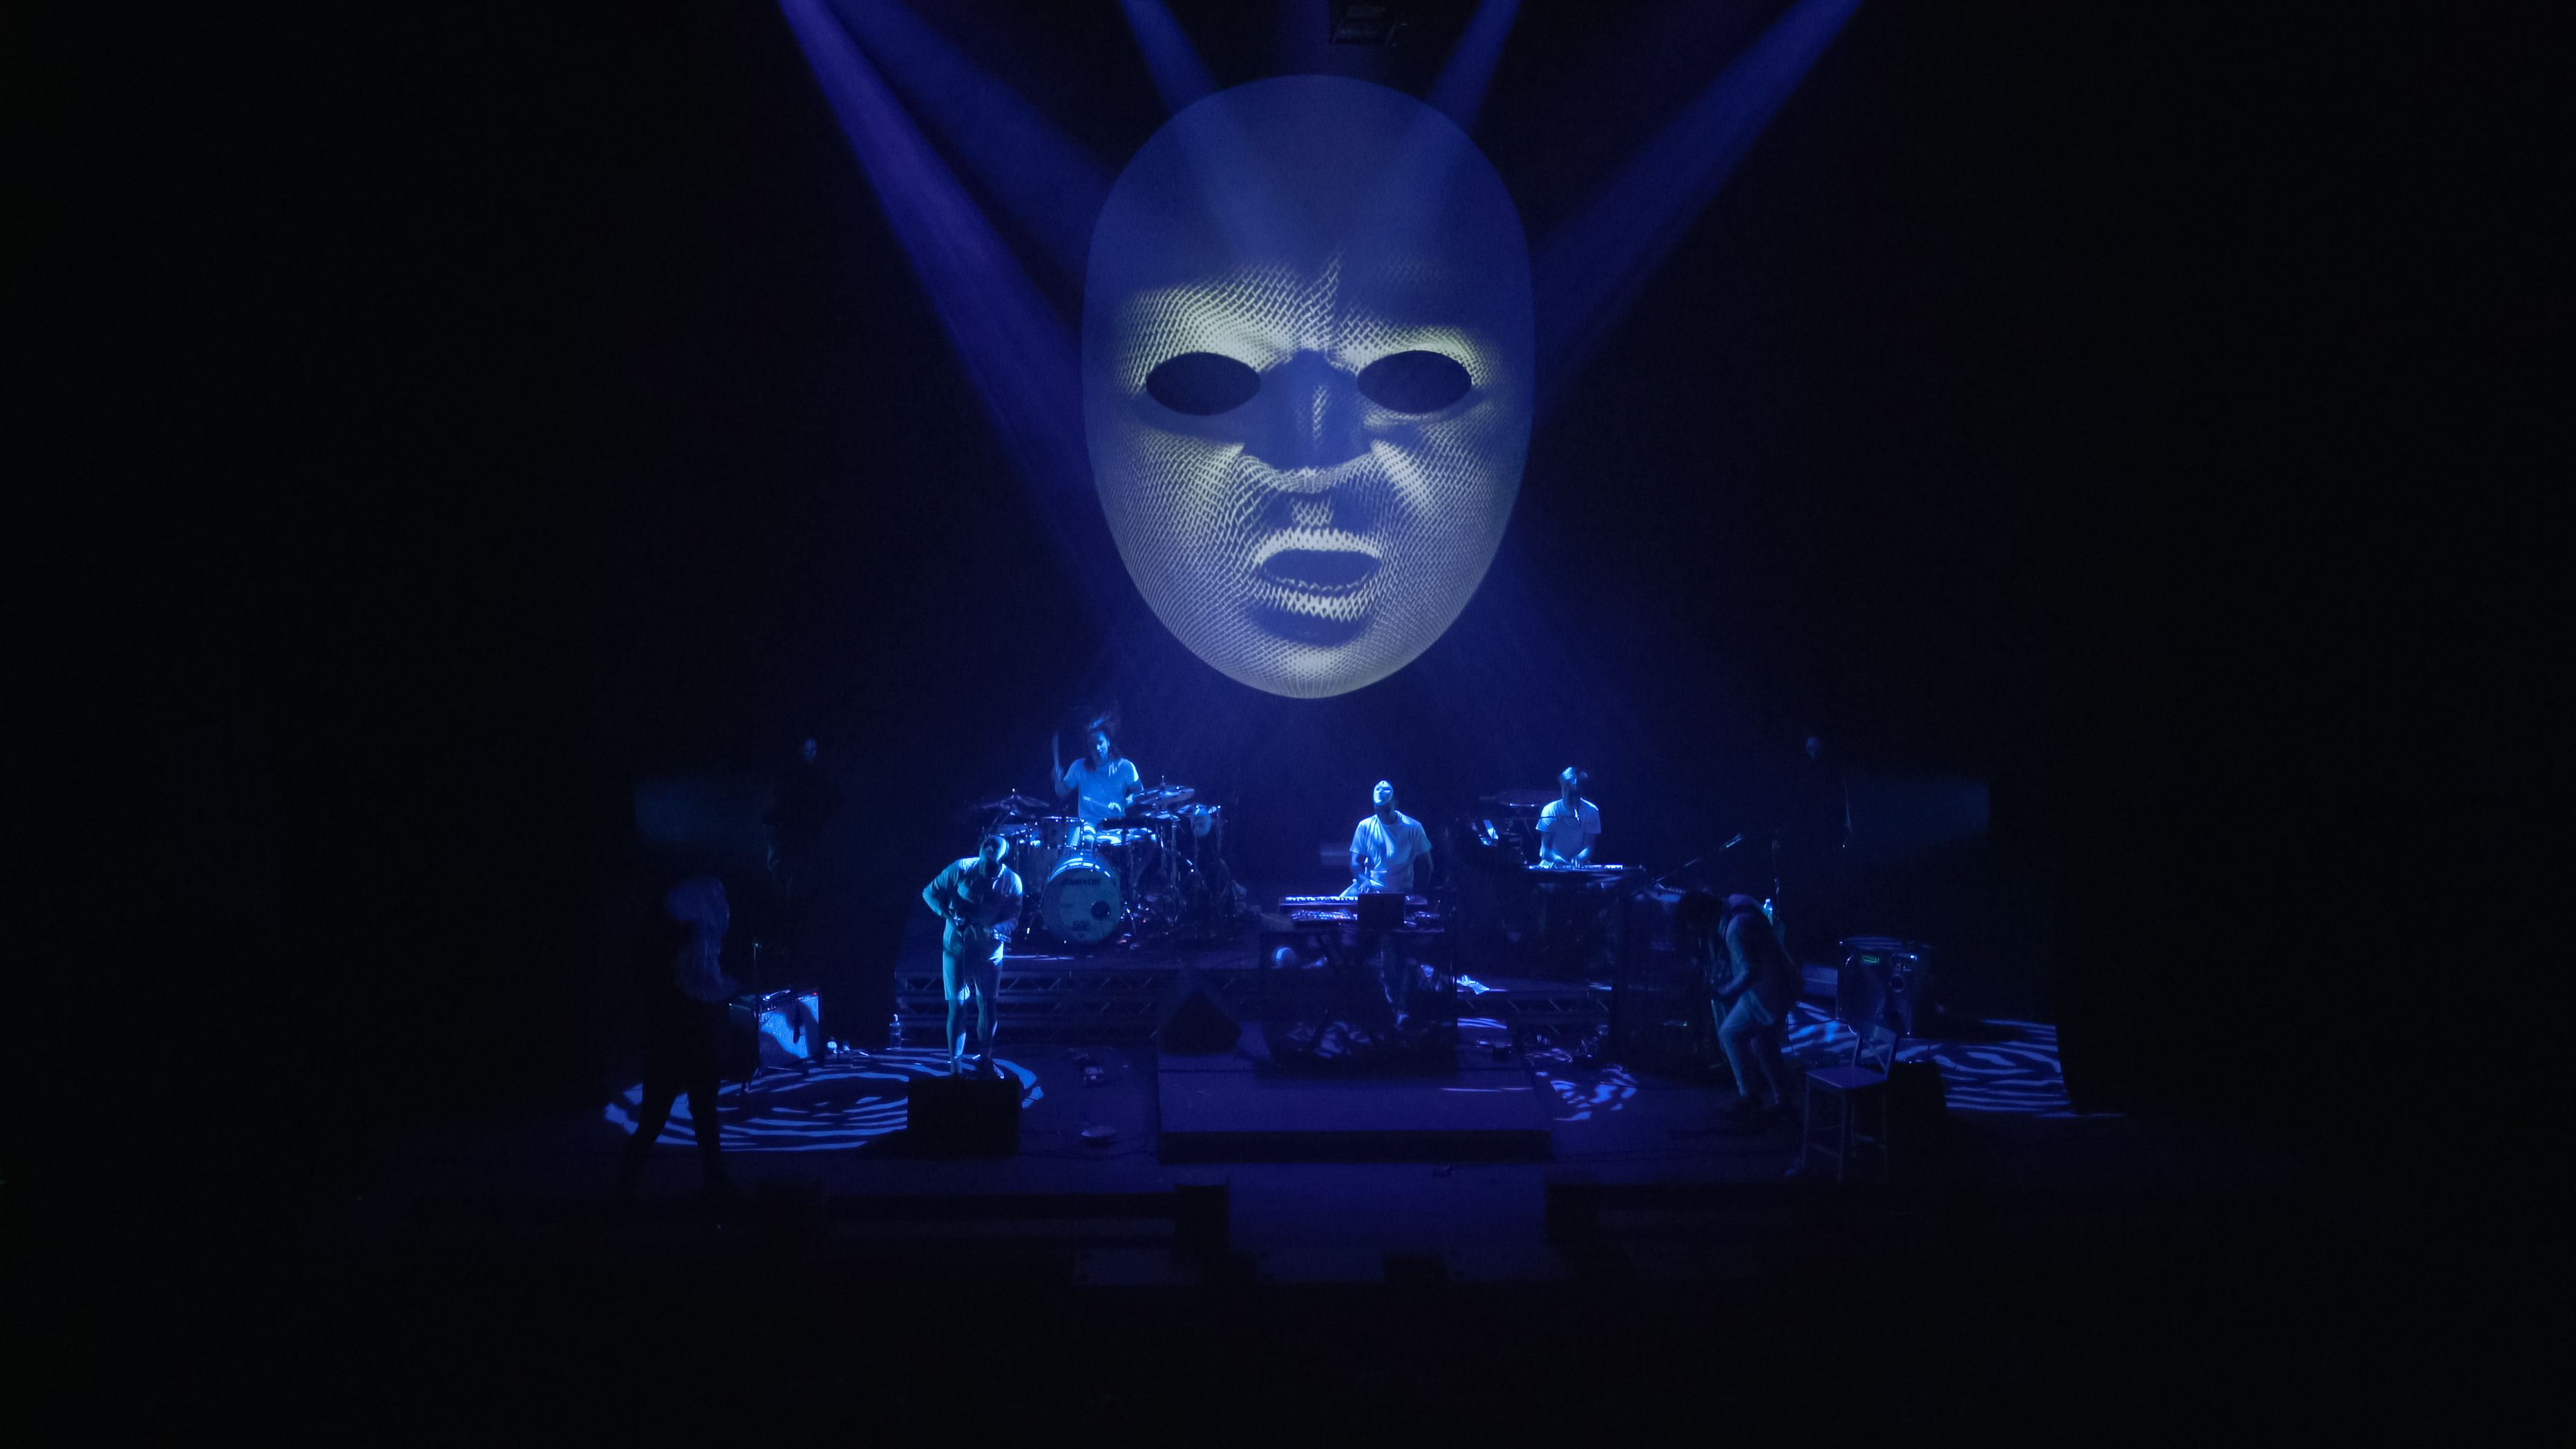 The projection mapped MeltyBrains? mask during their performance